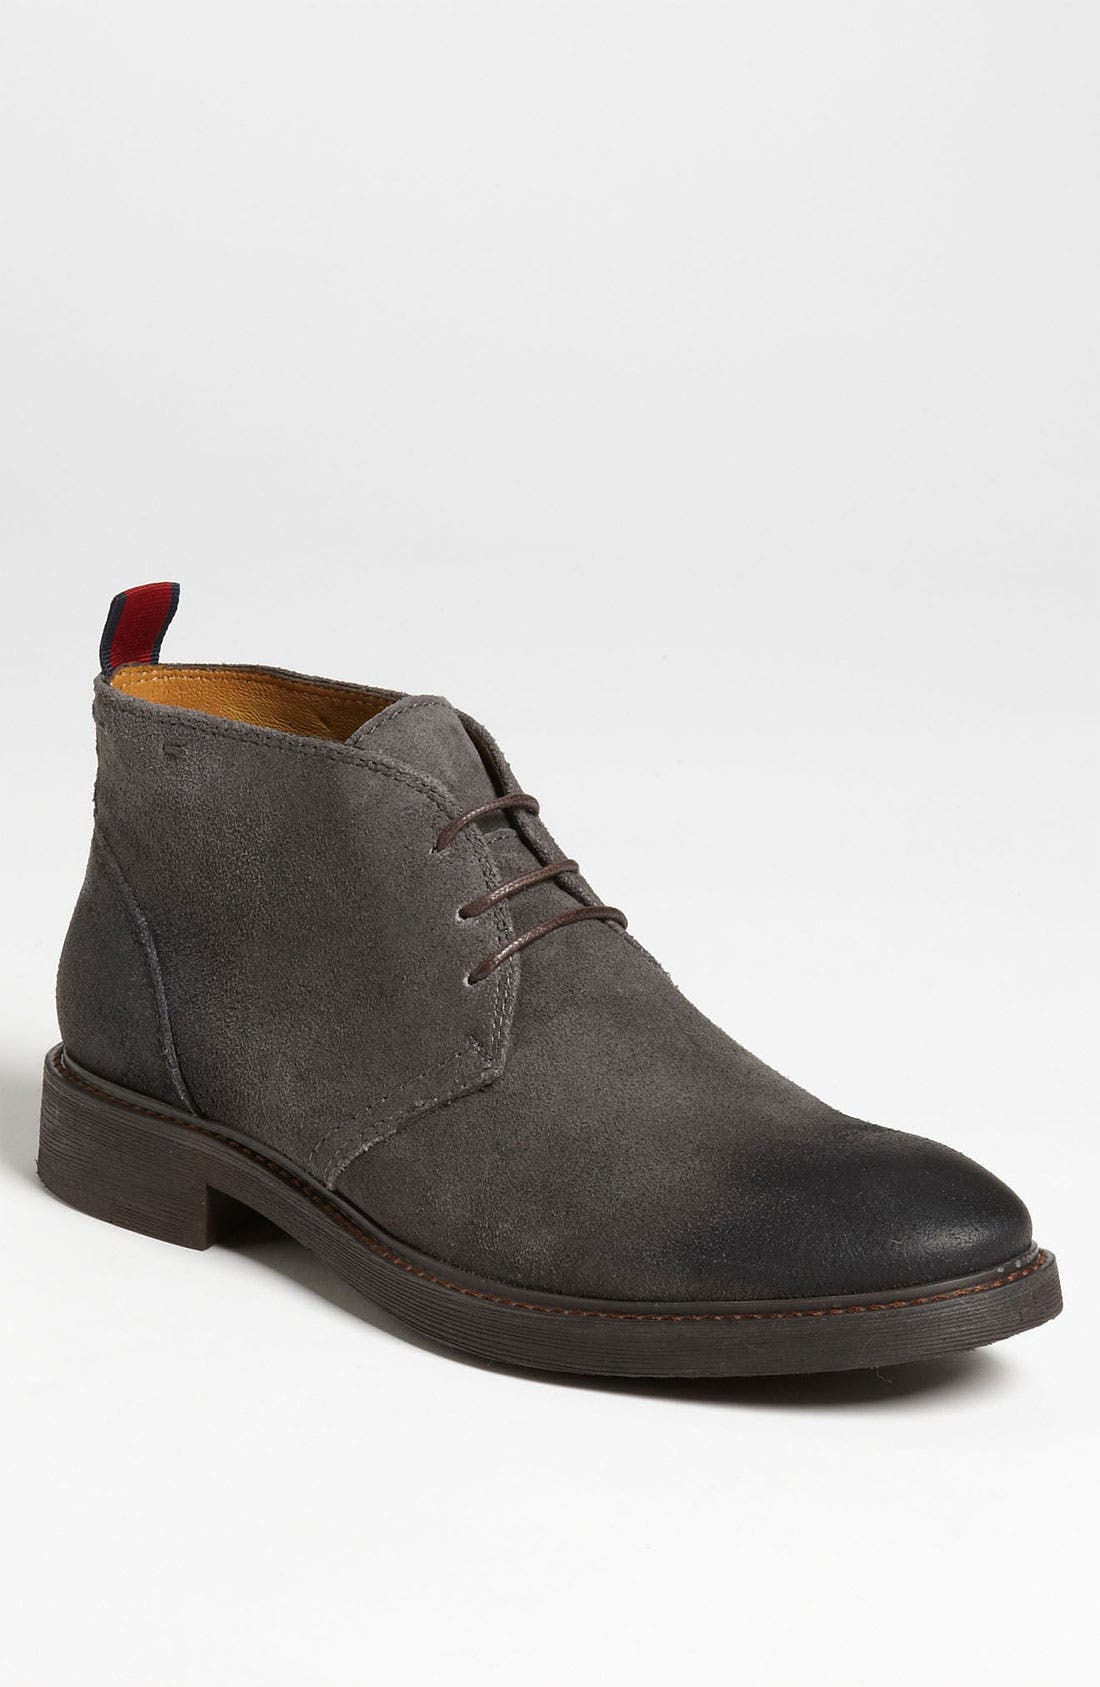 Main Image - 1901 'Castle' Chukka Boot